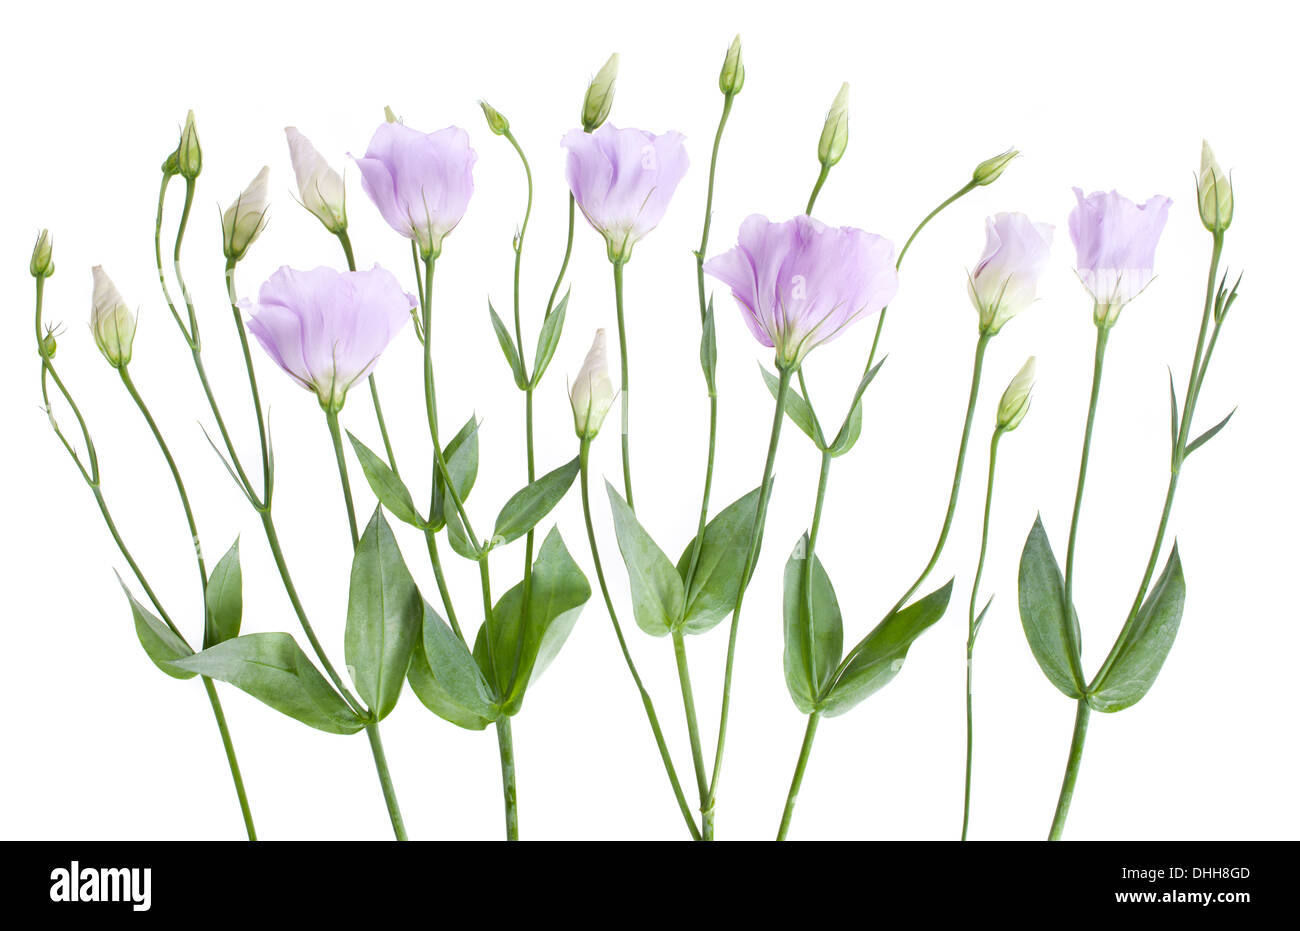 Pale lilac Lisianthus flowers arranged in a line isolated on white background with shallow depth of field. - Stock Image